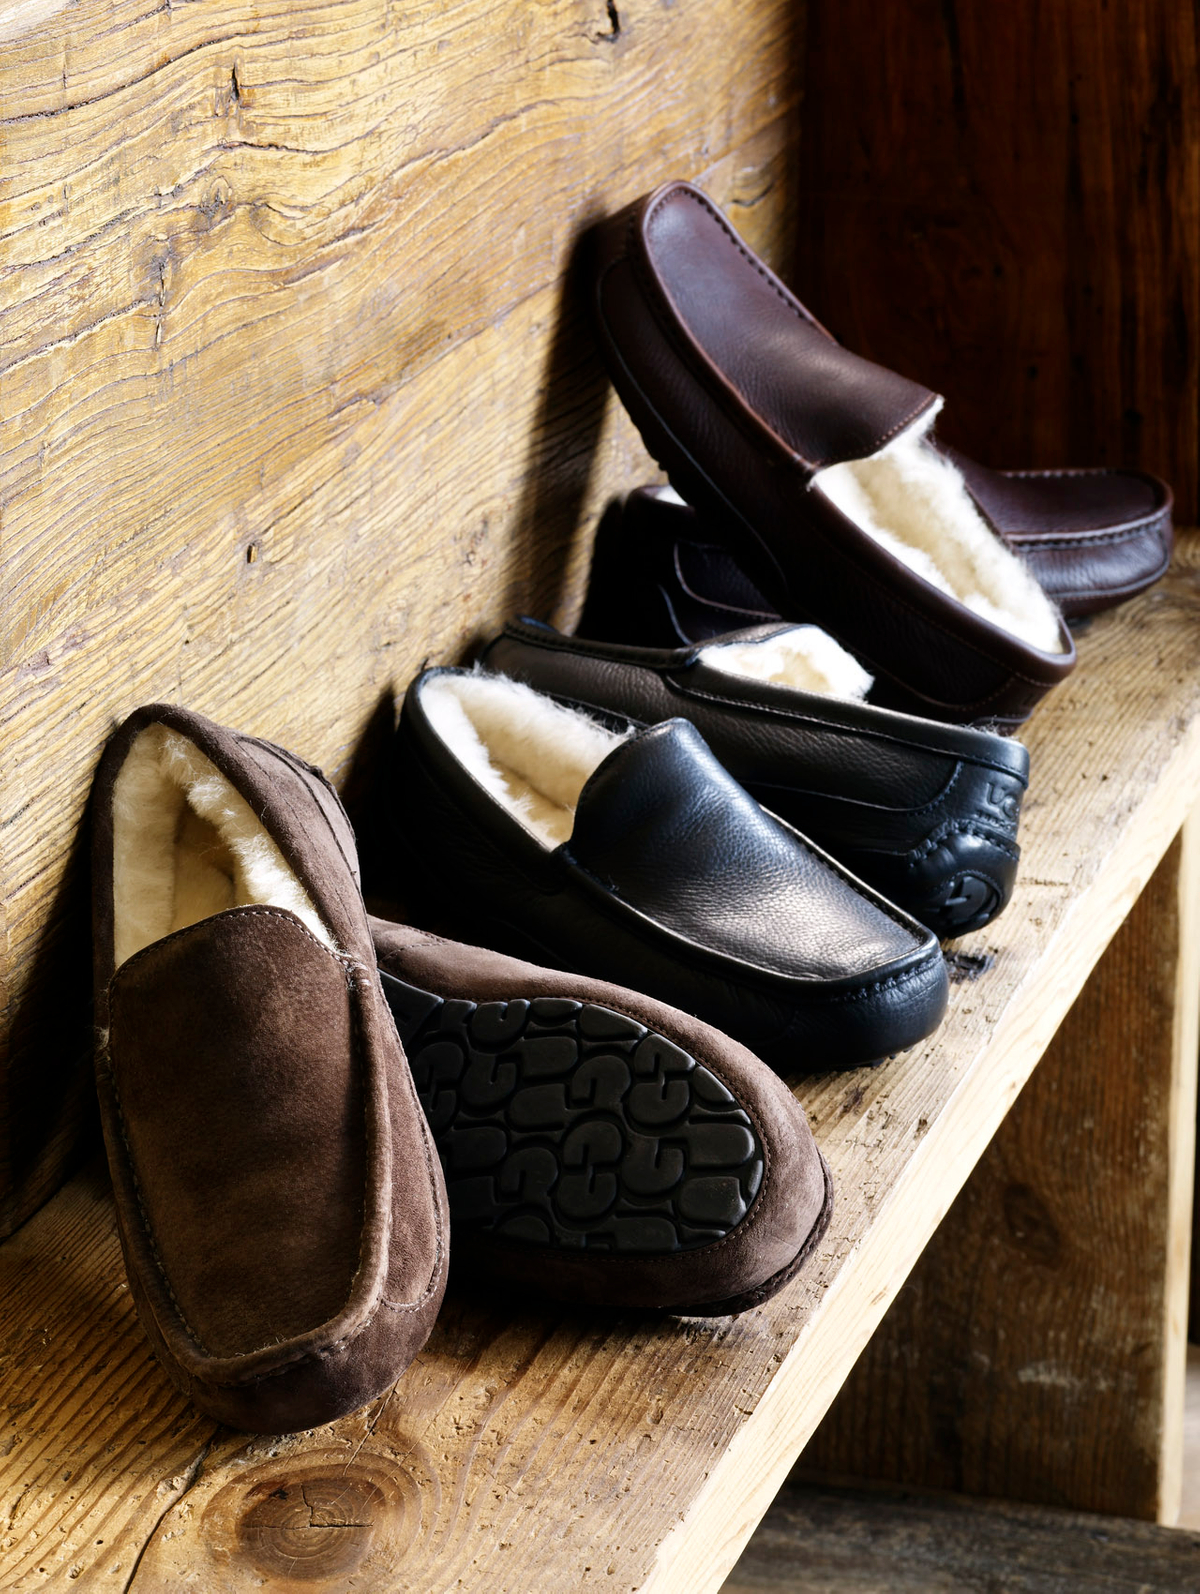 ChristopherWhite_Ugg_Fall_2010_1.jpg